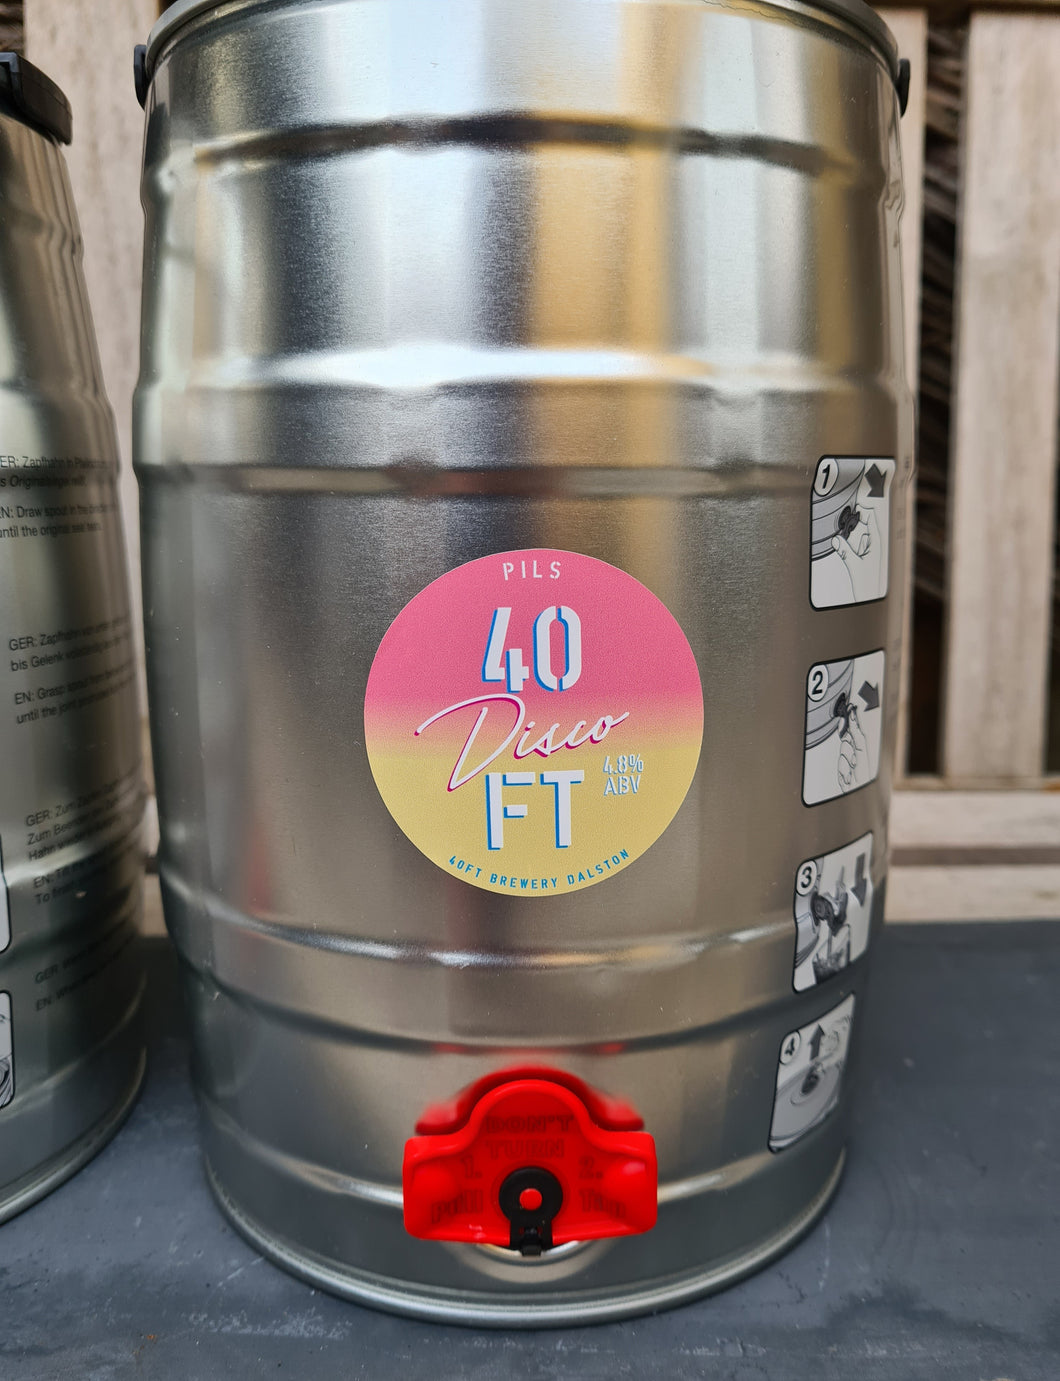 40FT - Disco Pils Mini-Keg - 4.8% ABV (5Ltr)